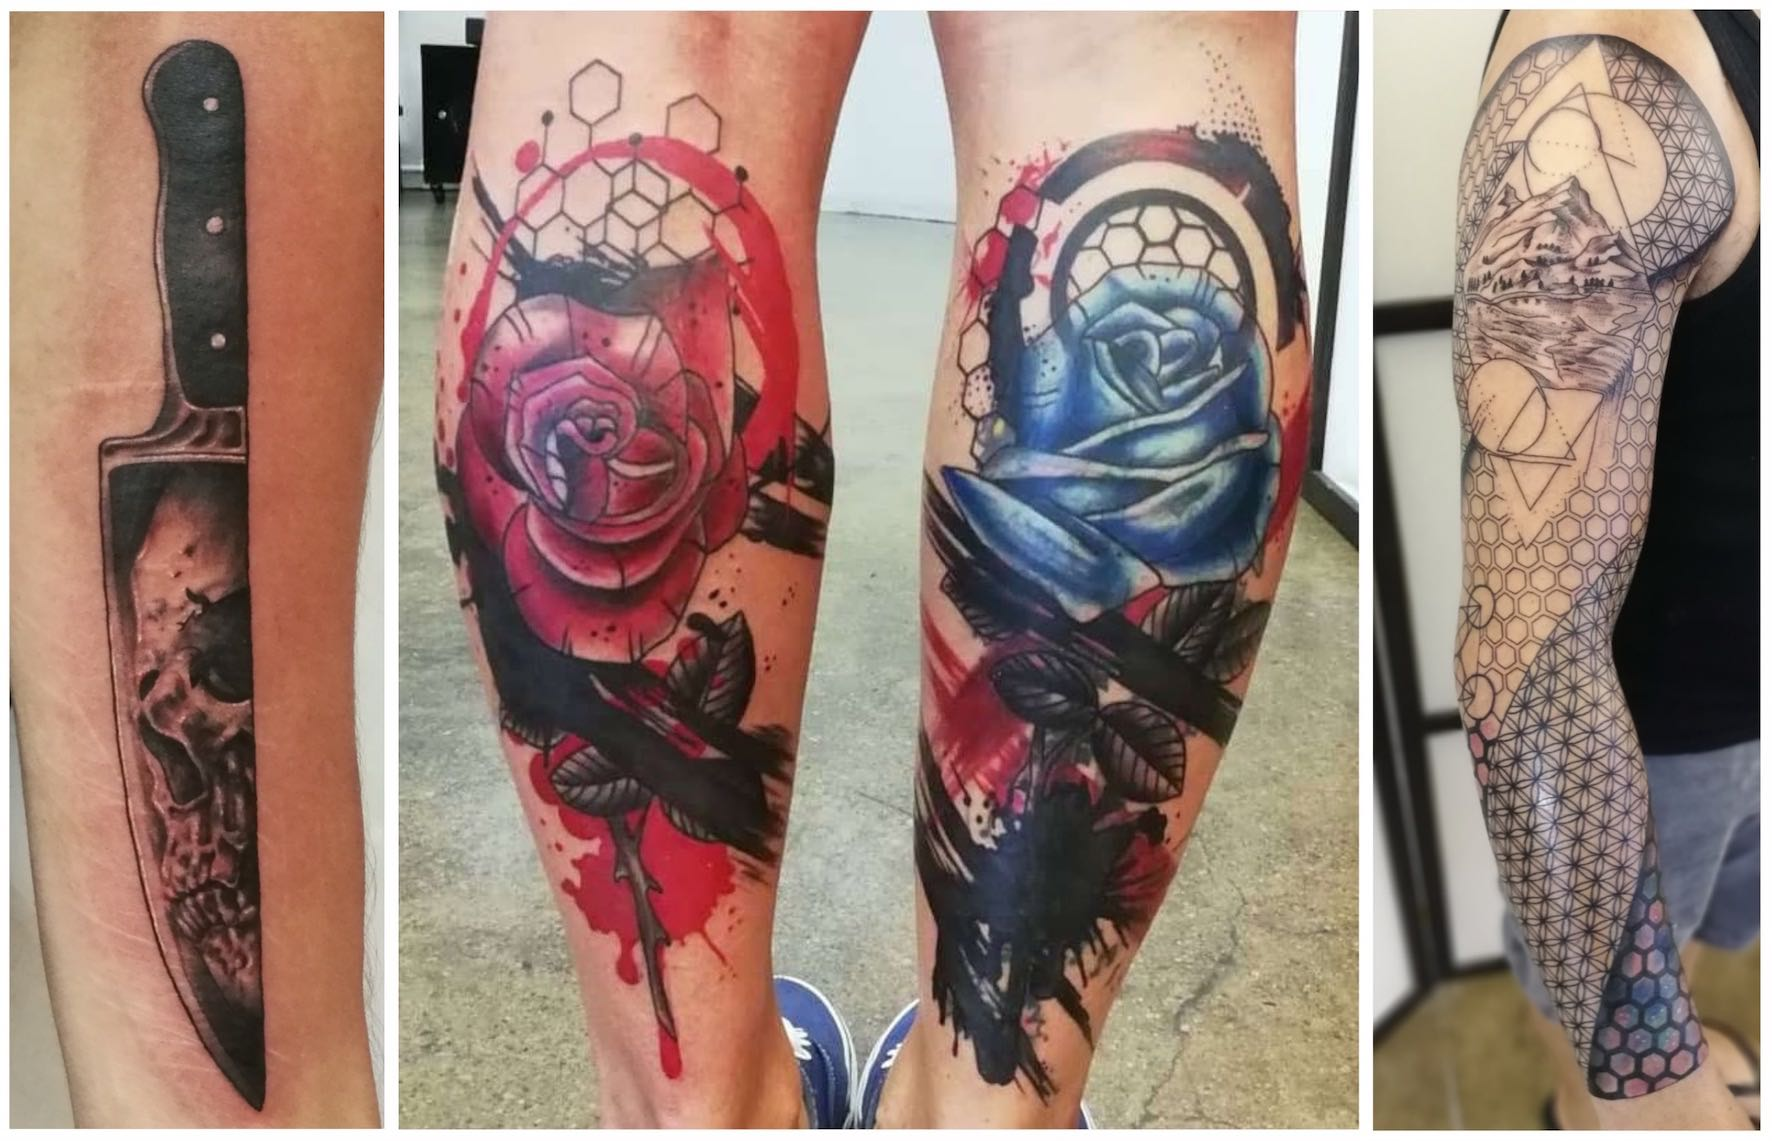 A selection of tattoos done by Sheldon Shaw